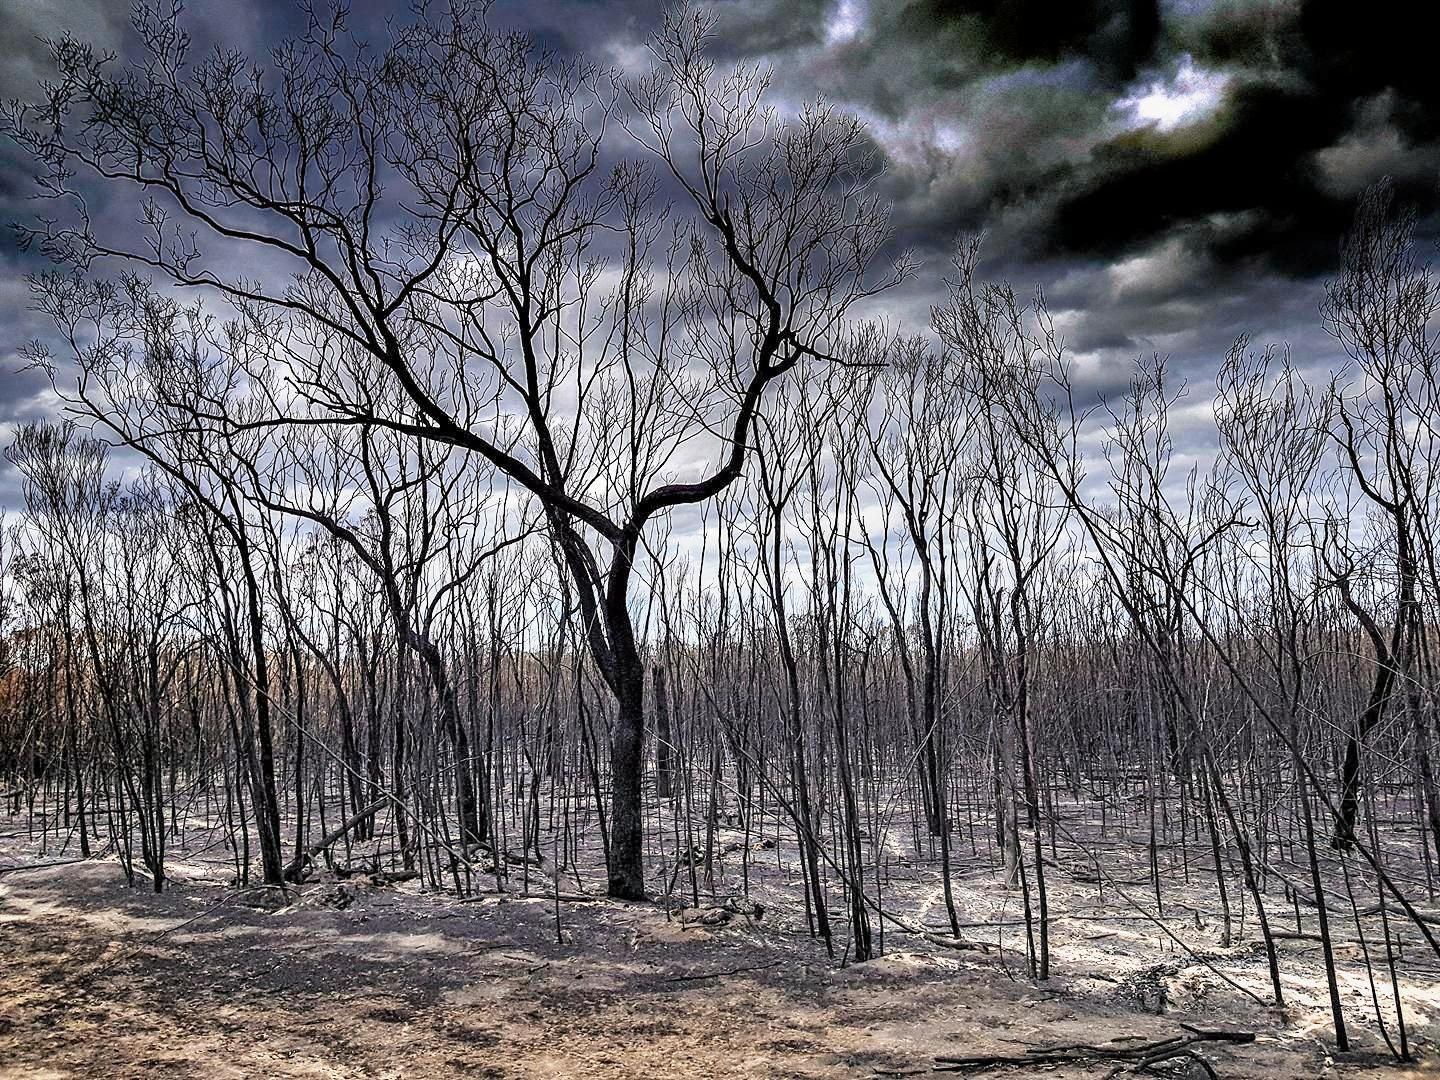 BUSHFIRE RECOVERY: Anyone feeling the effects of stress after the bushfires in Northern NSW is urged to seek assistance.